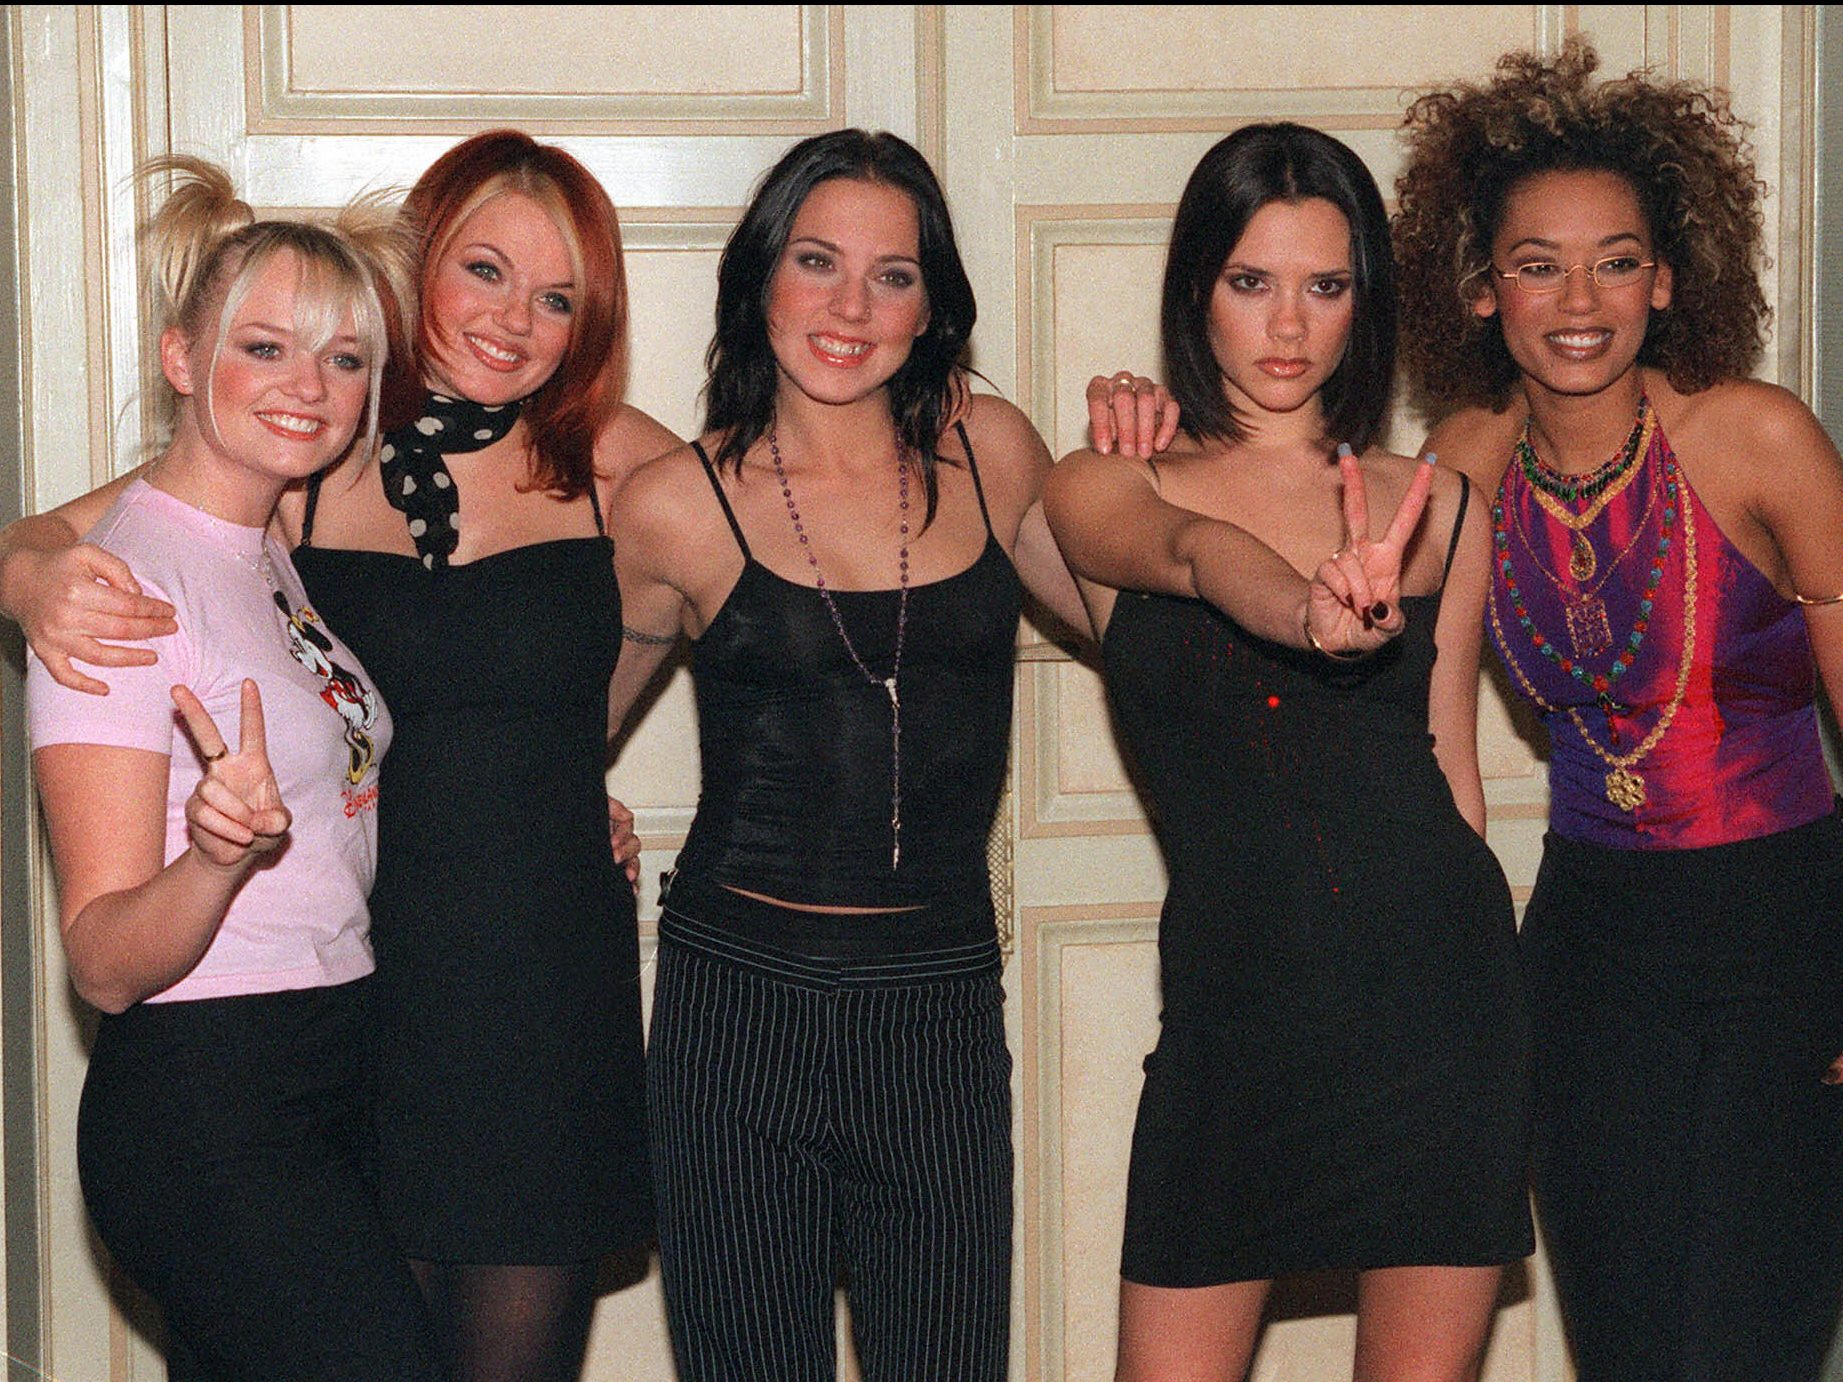 Spice Girls celebrate 25th anniversary of debut single Wannabe with EP